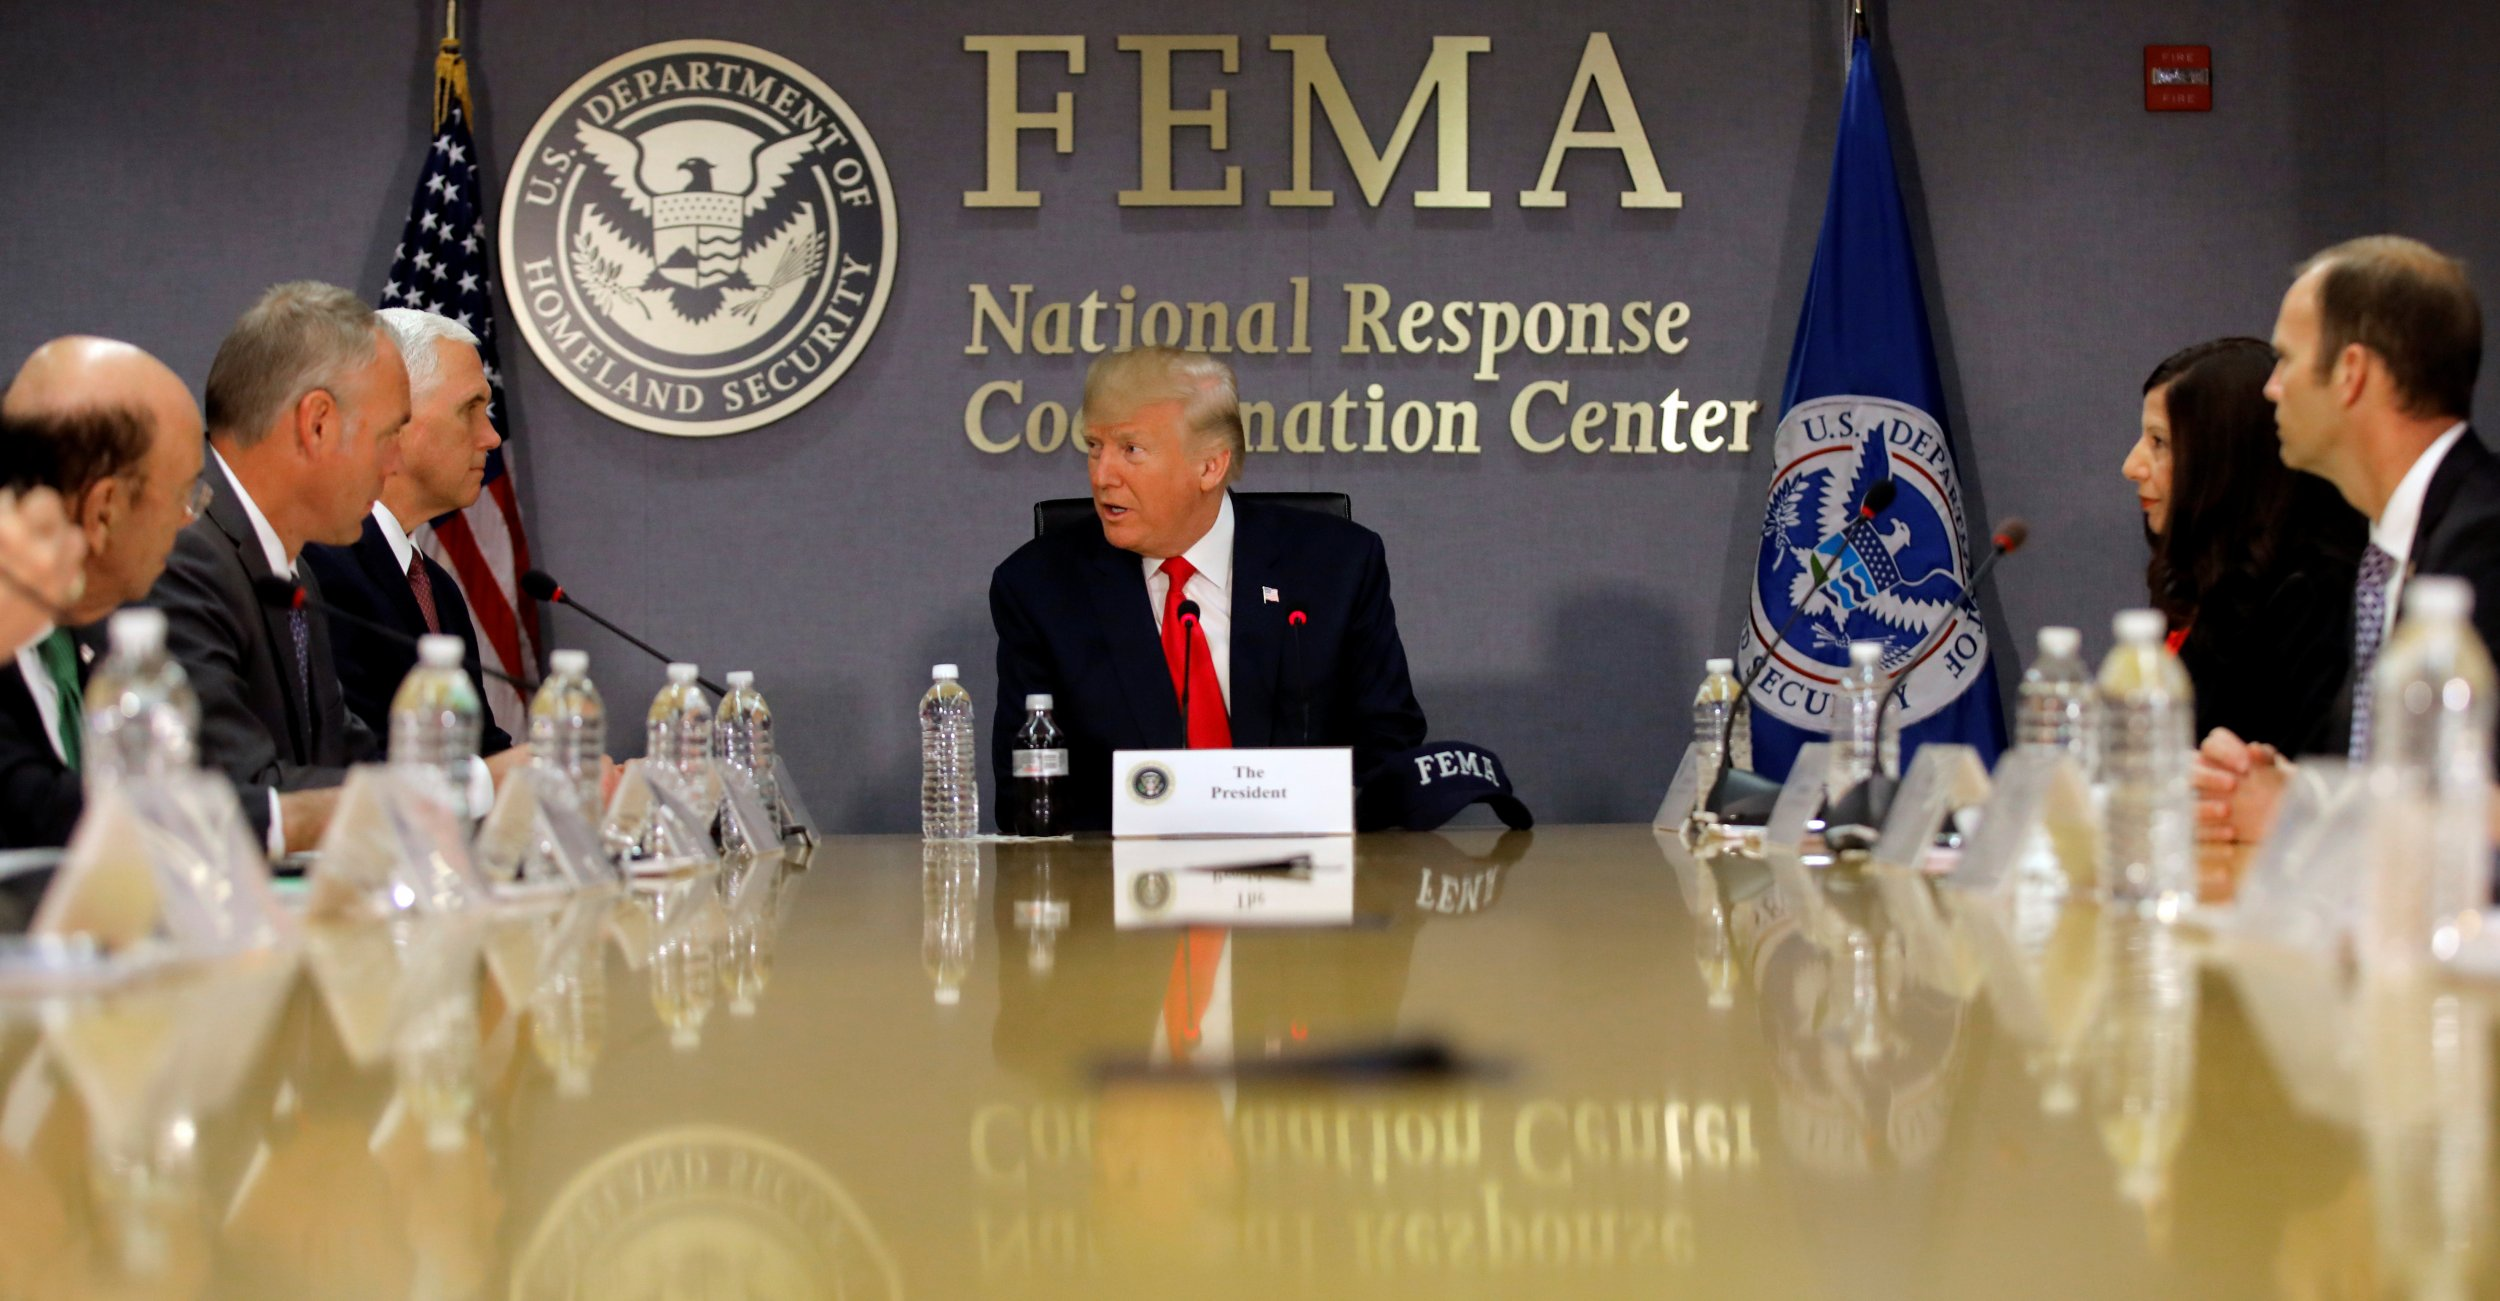 Report Fema Wasted Billions Of Taxpayer Dollars And May